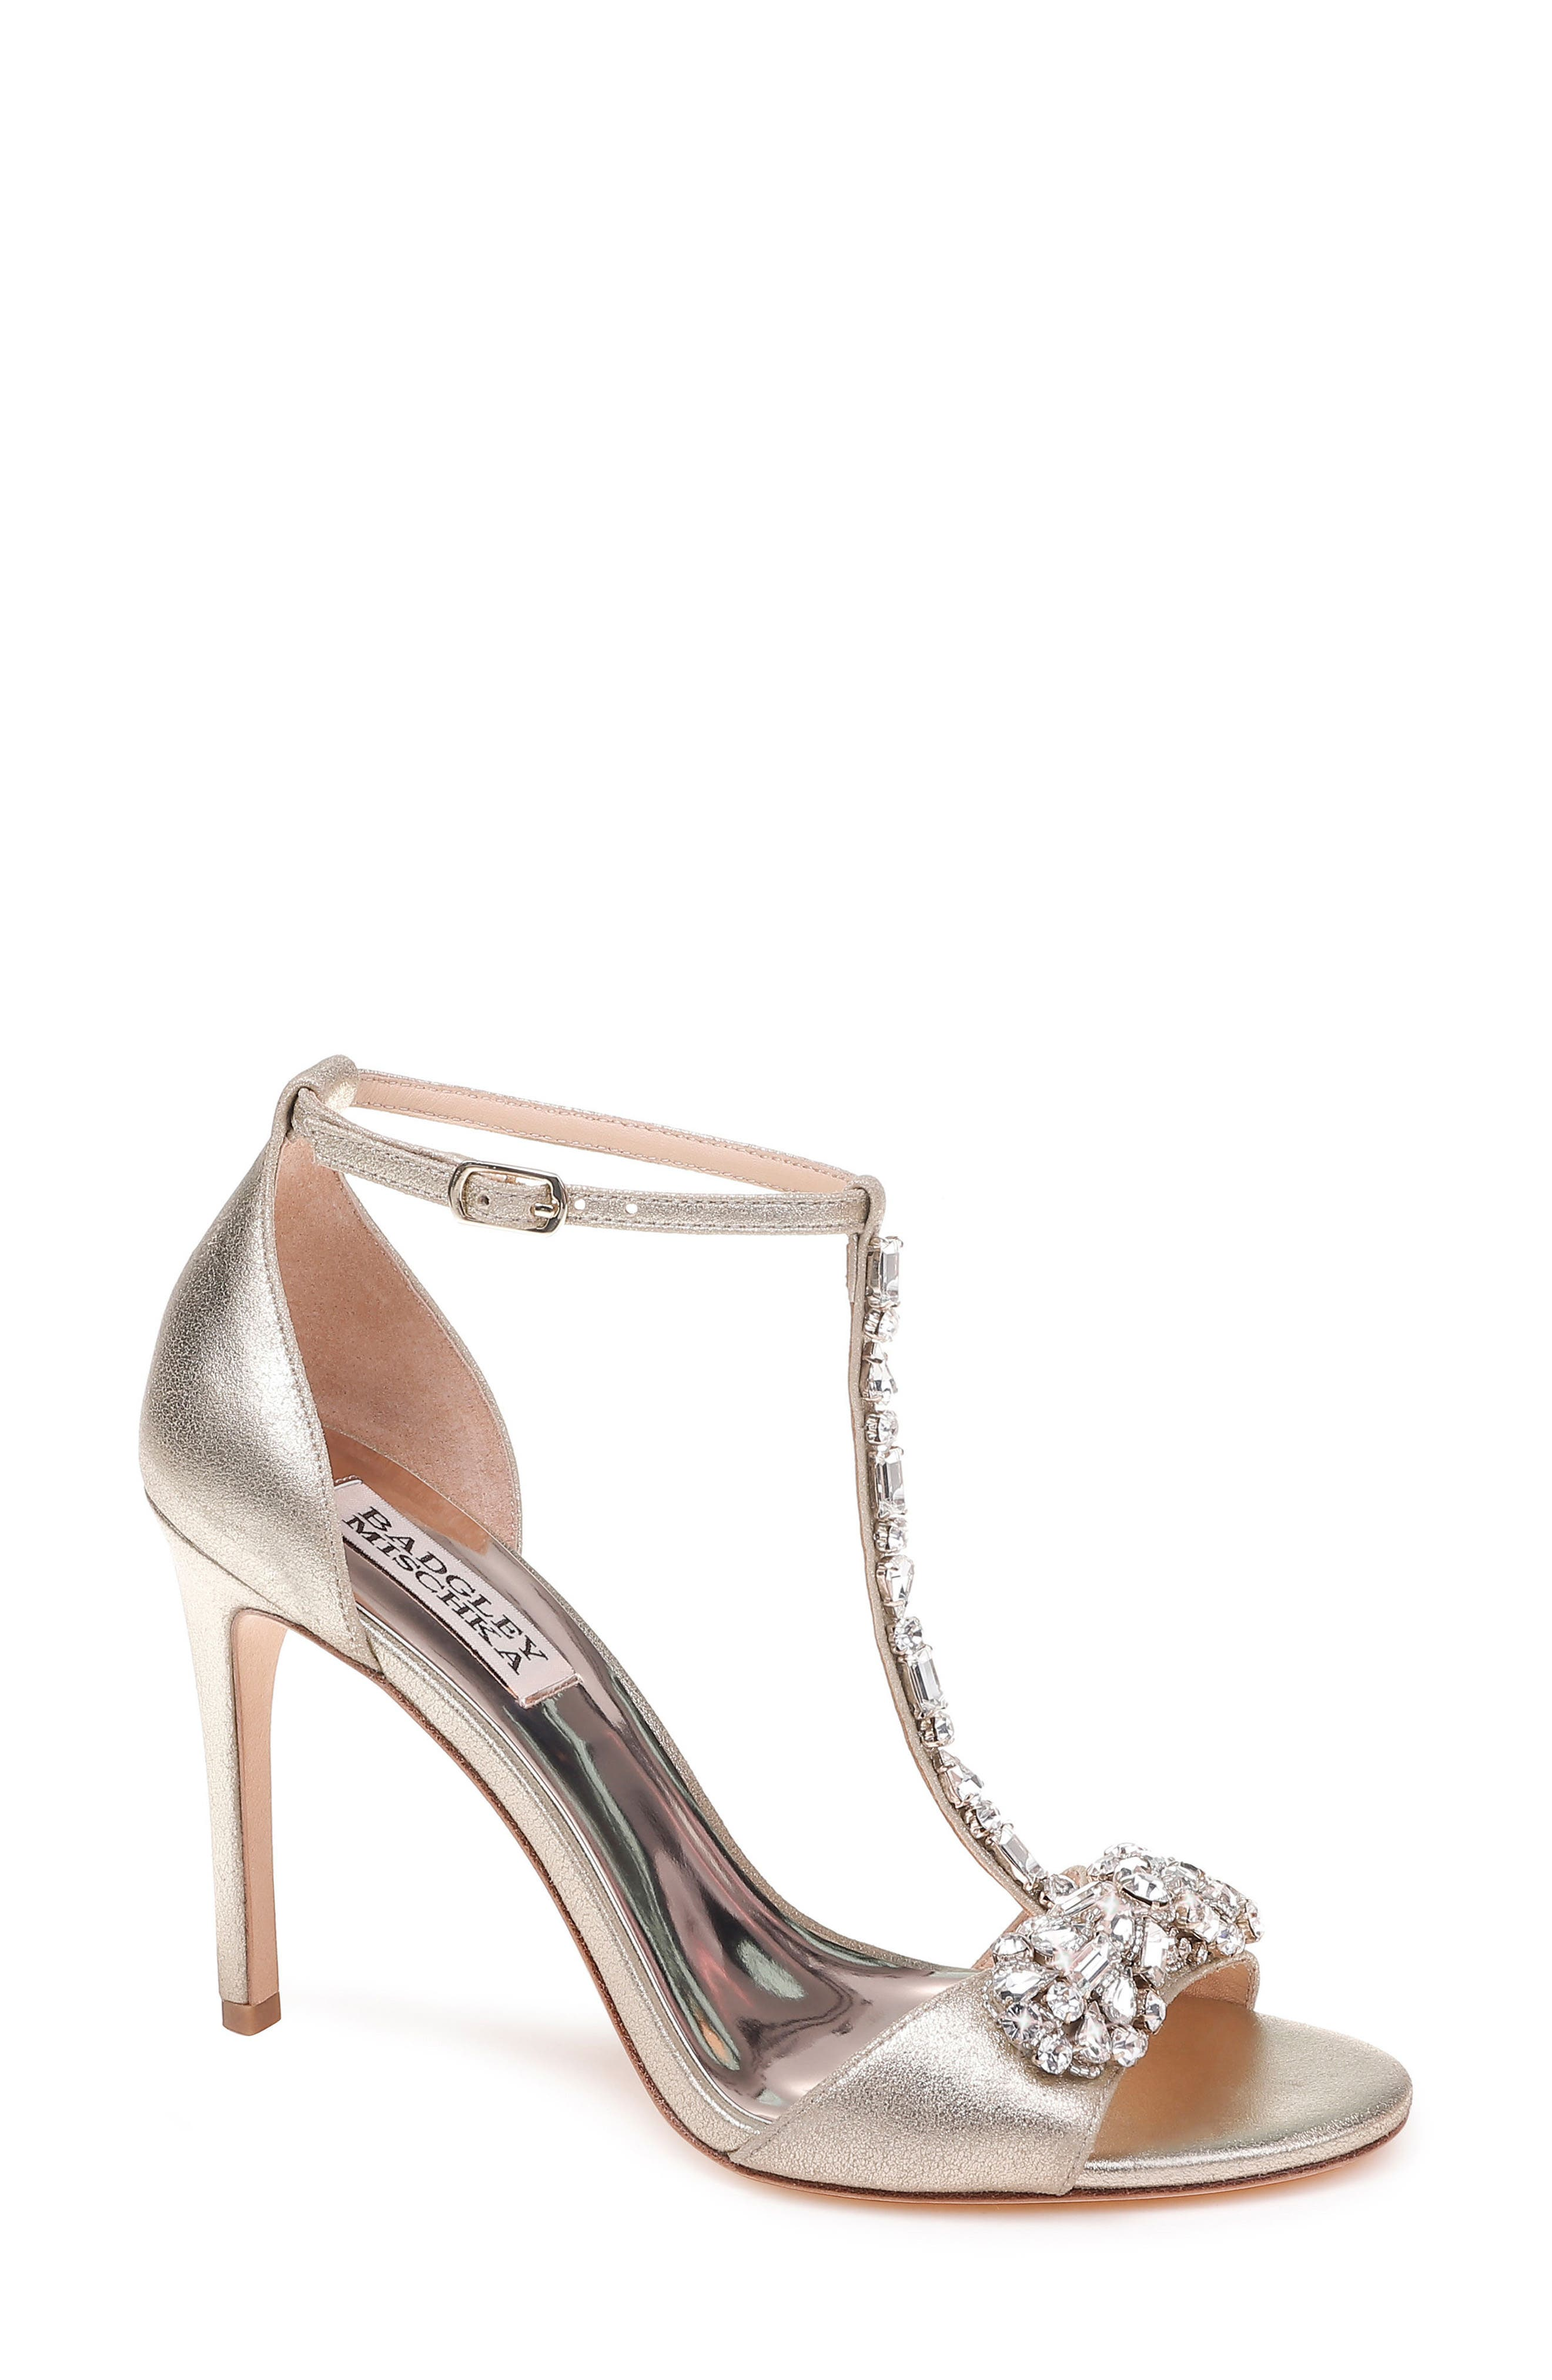 Pascale T-Strap Sandal,                             Main thumbnail 1, color,                             PLATINUM METALLIC SUEDE